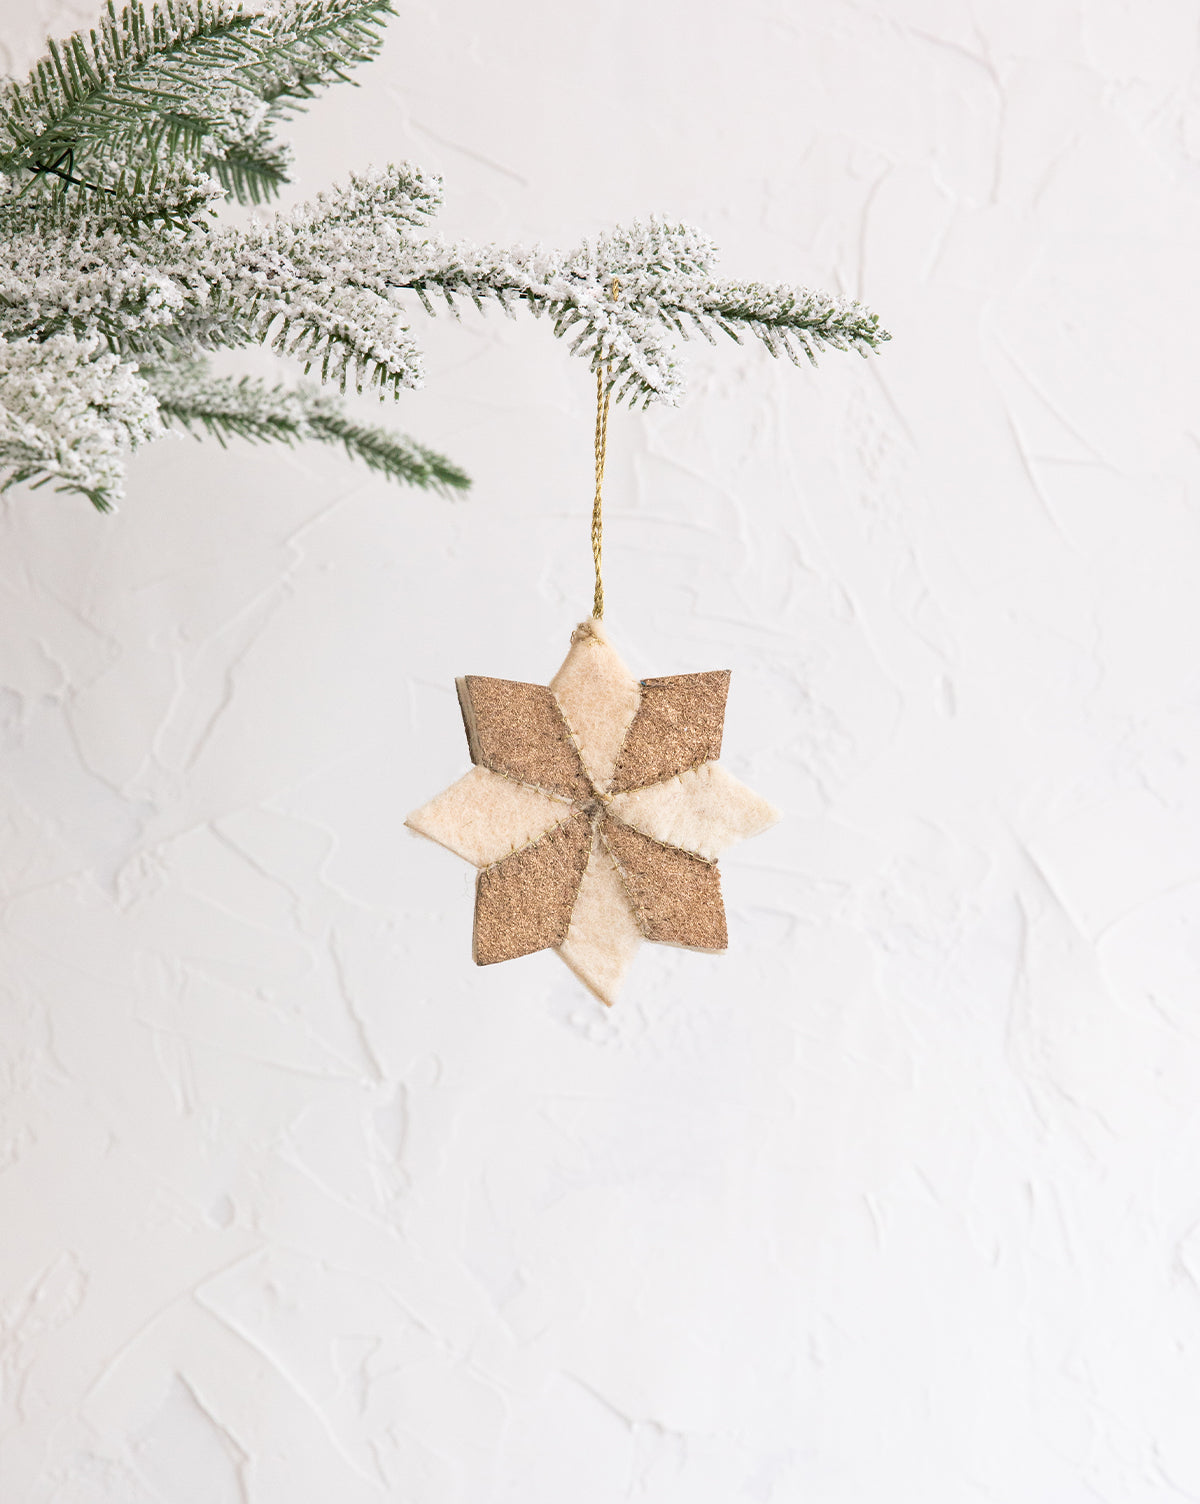 Felt Star Ornaments (Set of 2)